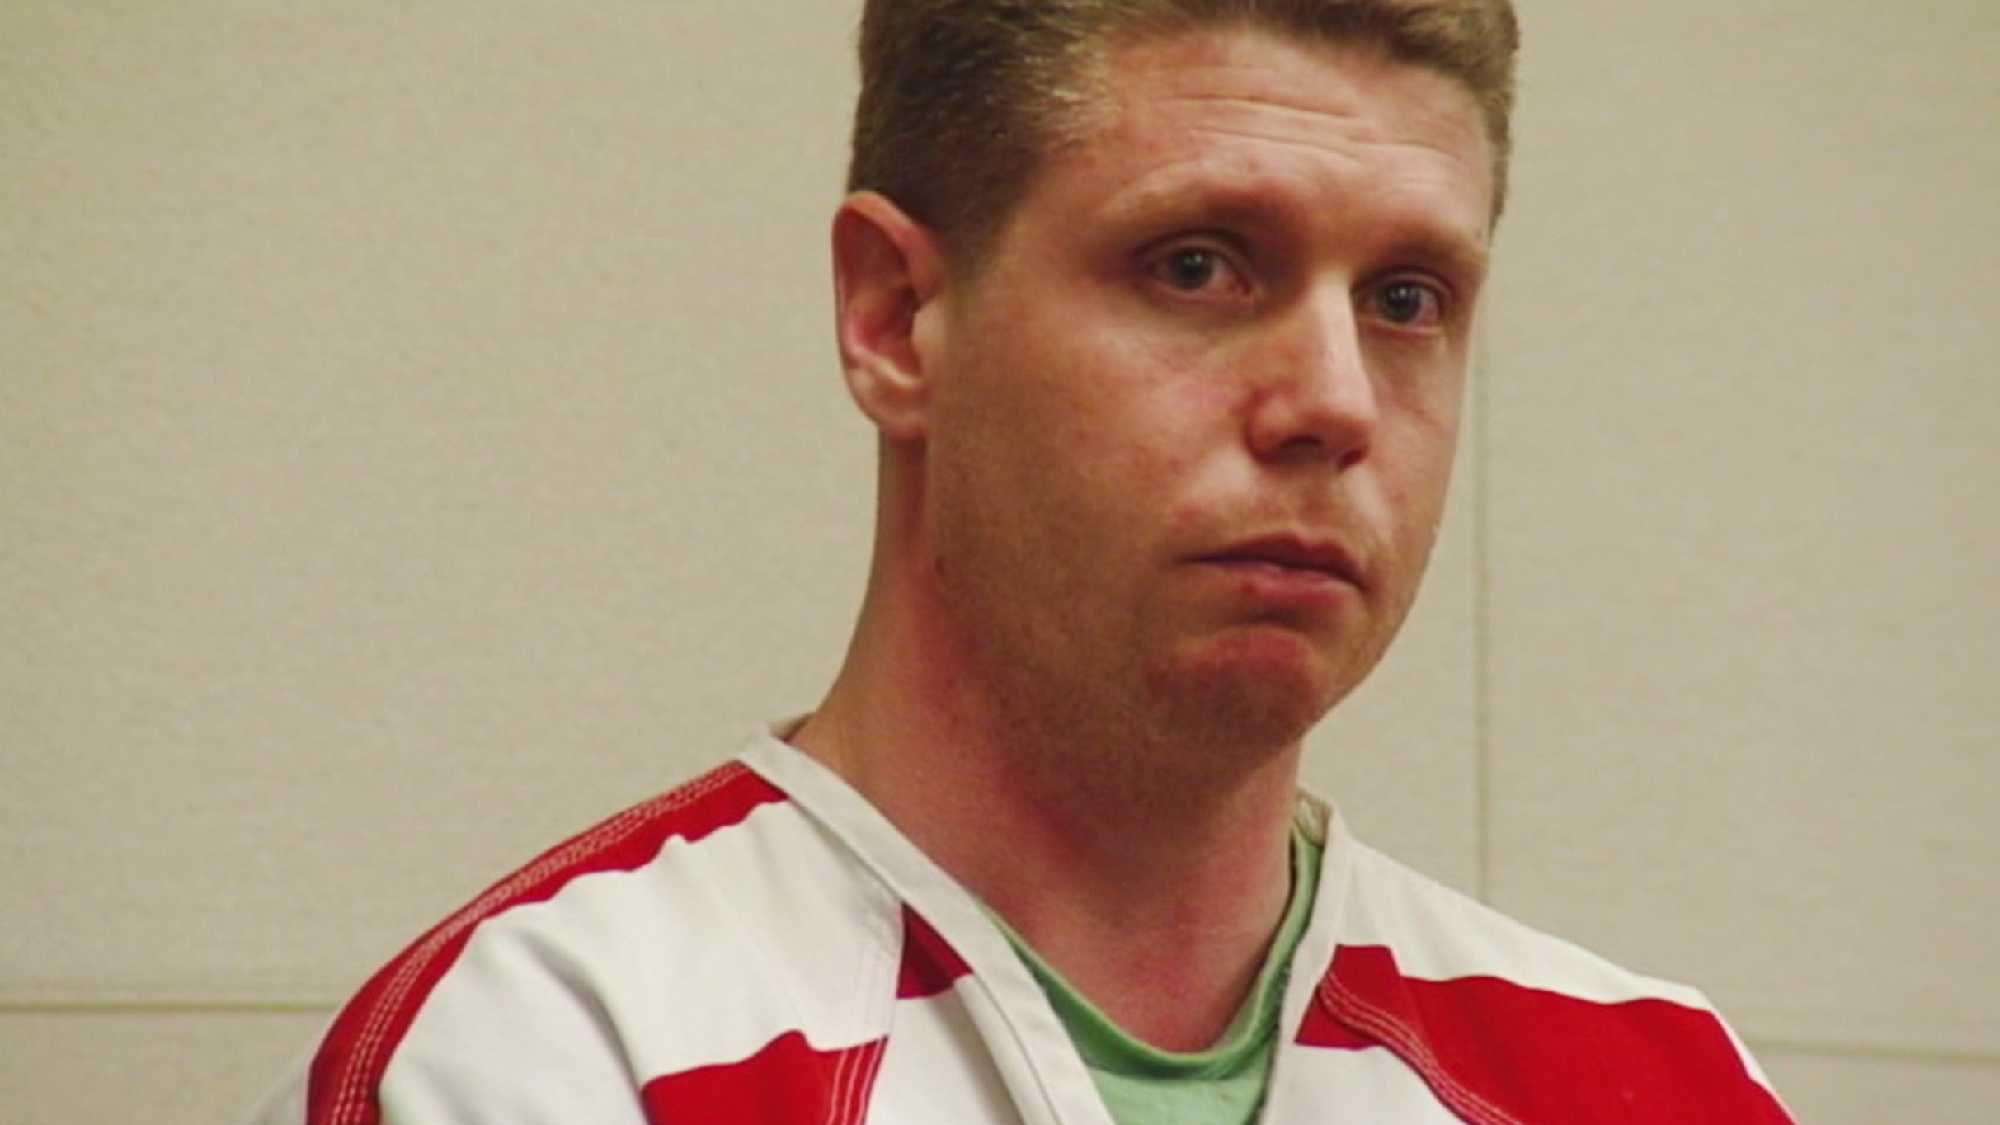 Stuart Elder is seen at his sentencing on April 1, 2015.